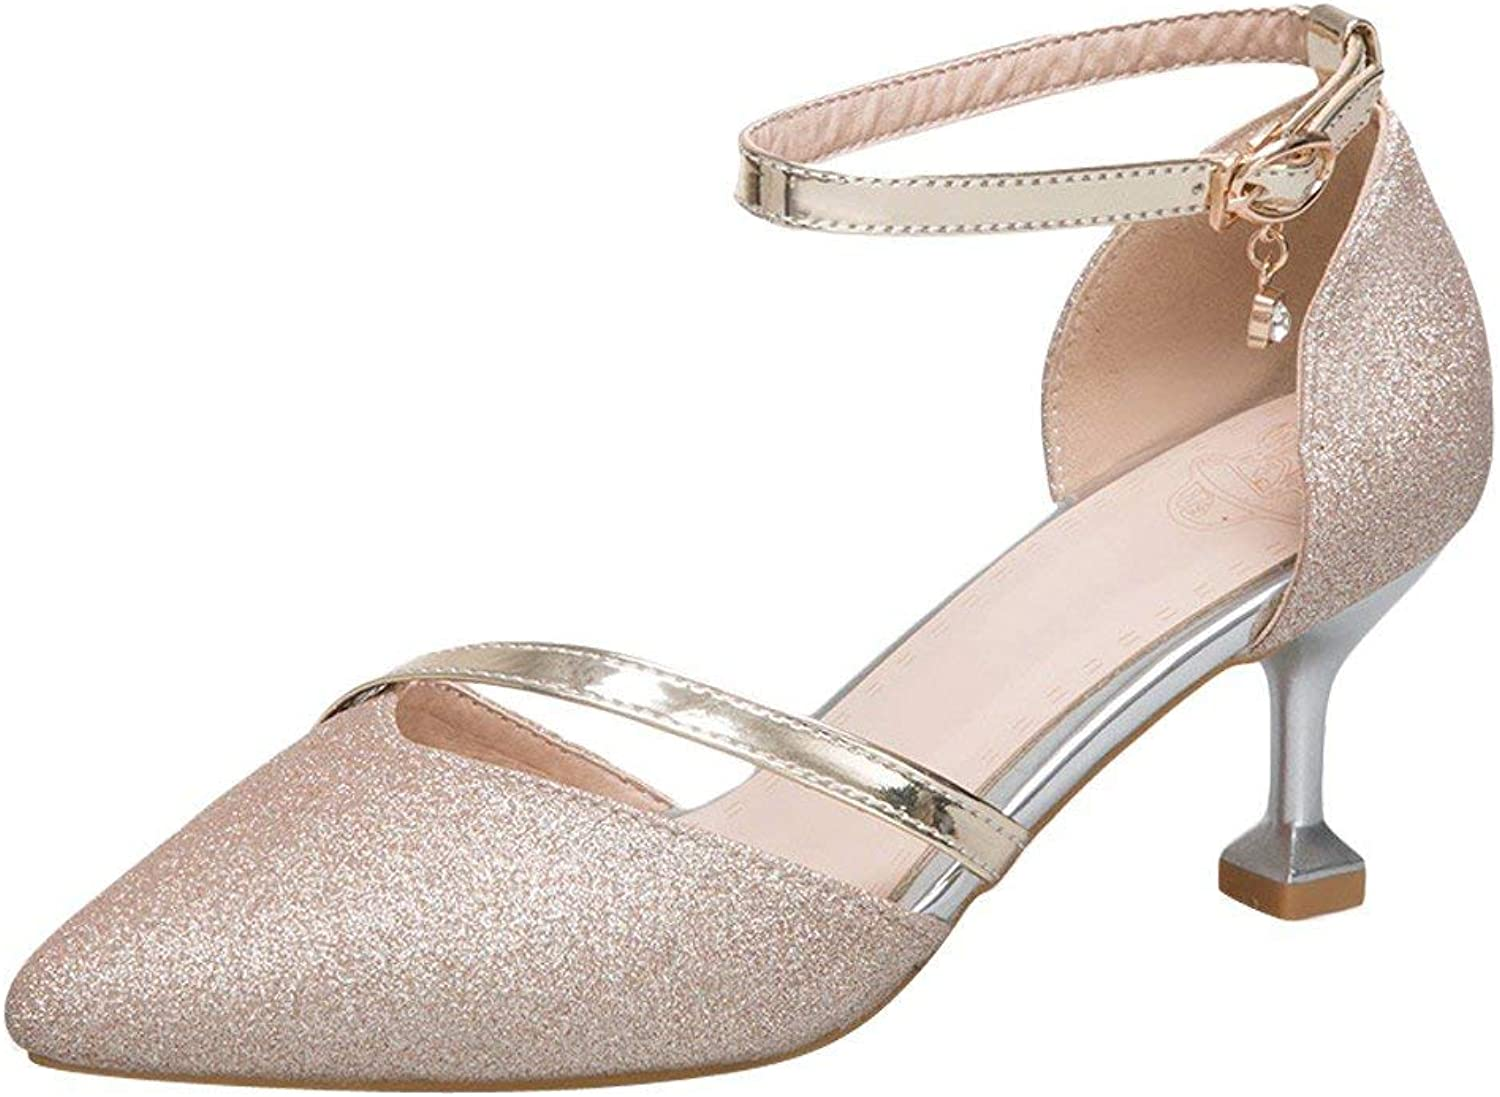 Gcanwea Women's Kitten Heel Ankle Strap Elegant D'Orsay shoes Fashion Sexy Non-Slip Rubber Sole Simple Pointed Toe Joker Mid Heels Ladies Comfortable Silver 4.5 M US shoes